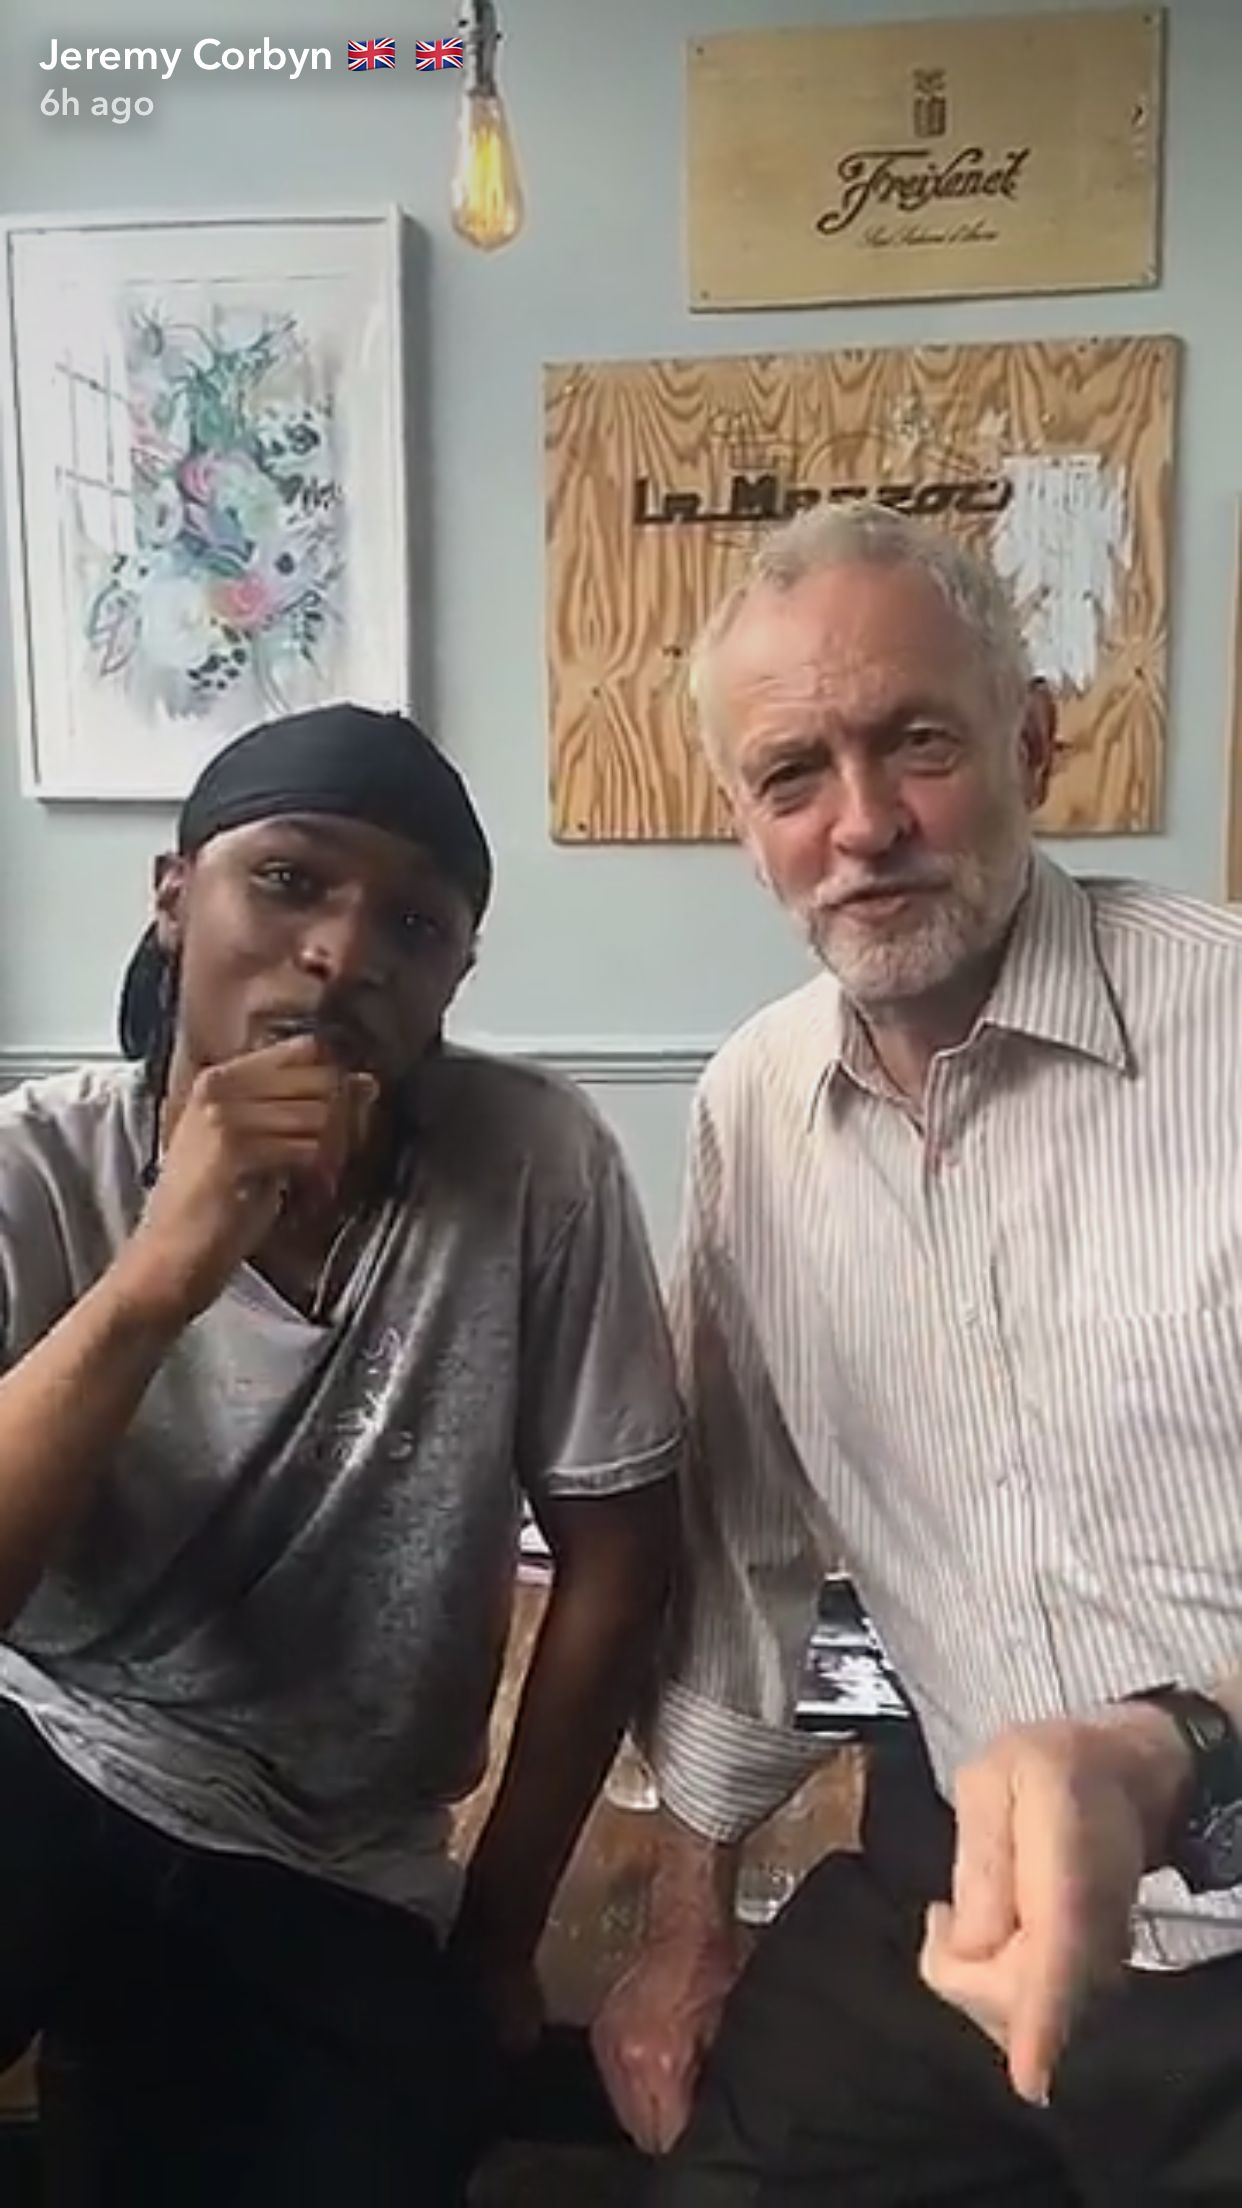 Jeremy Corbyn And Grime Star Jme Join Forces On Snapchat In Vote Registration